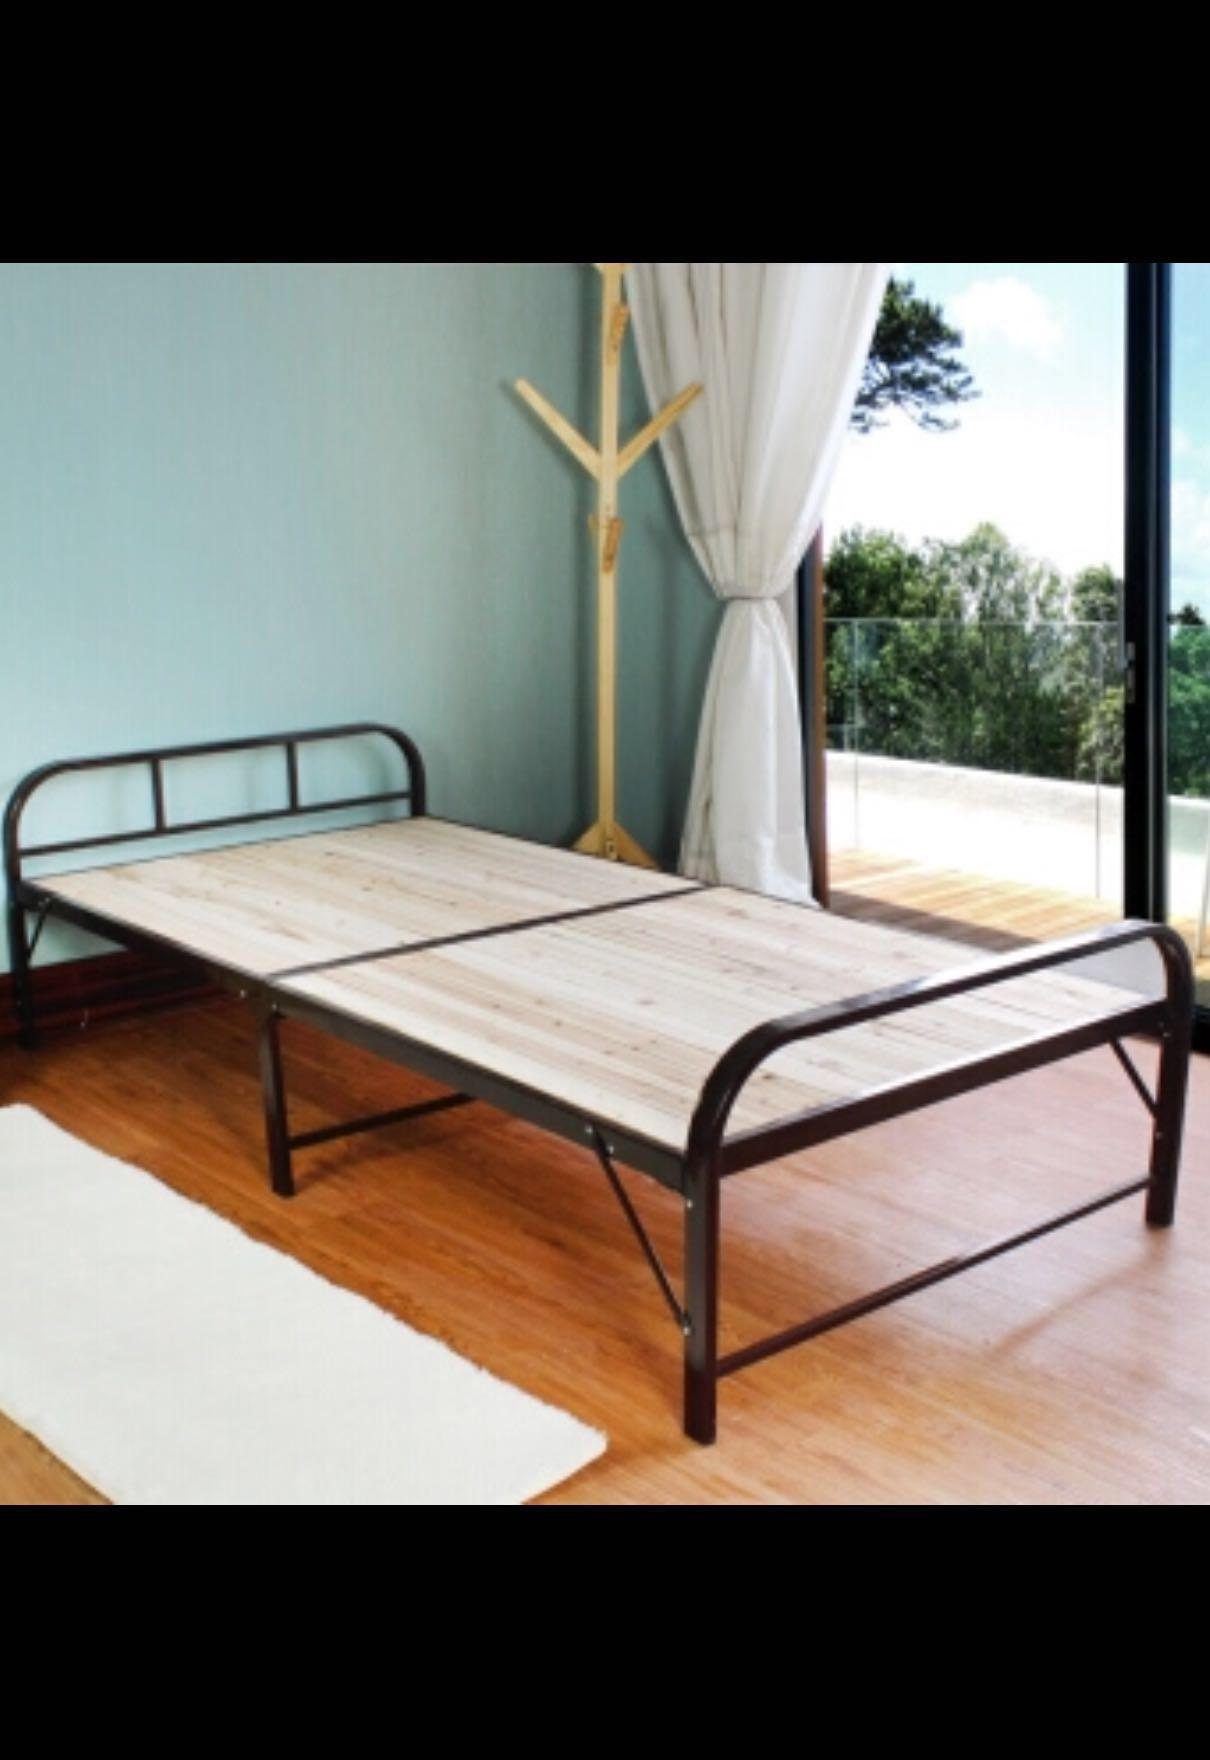 Instock Foldable Bed Frame Small Single Size 70cm190cm